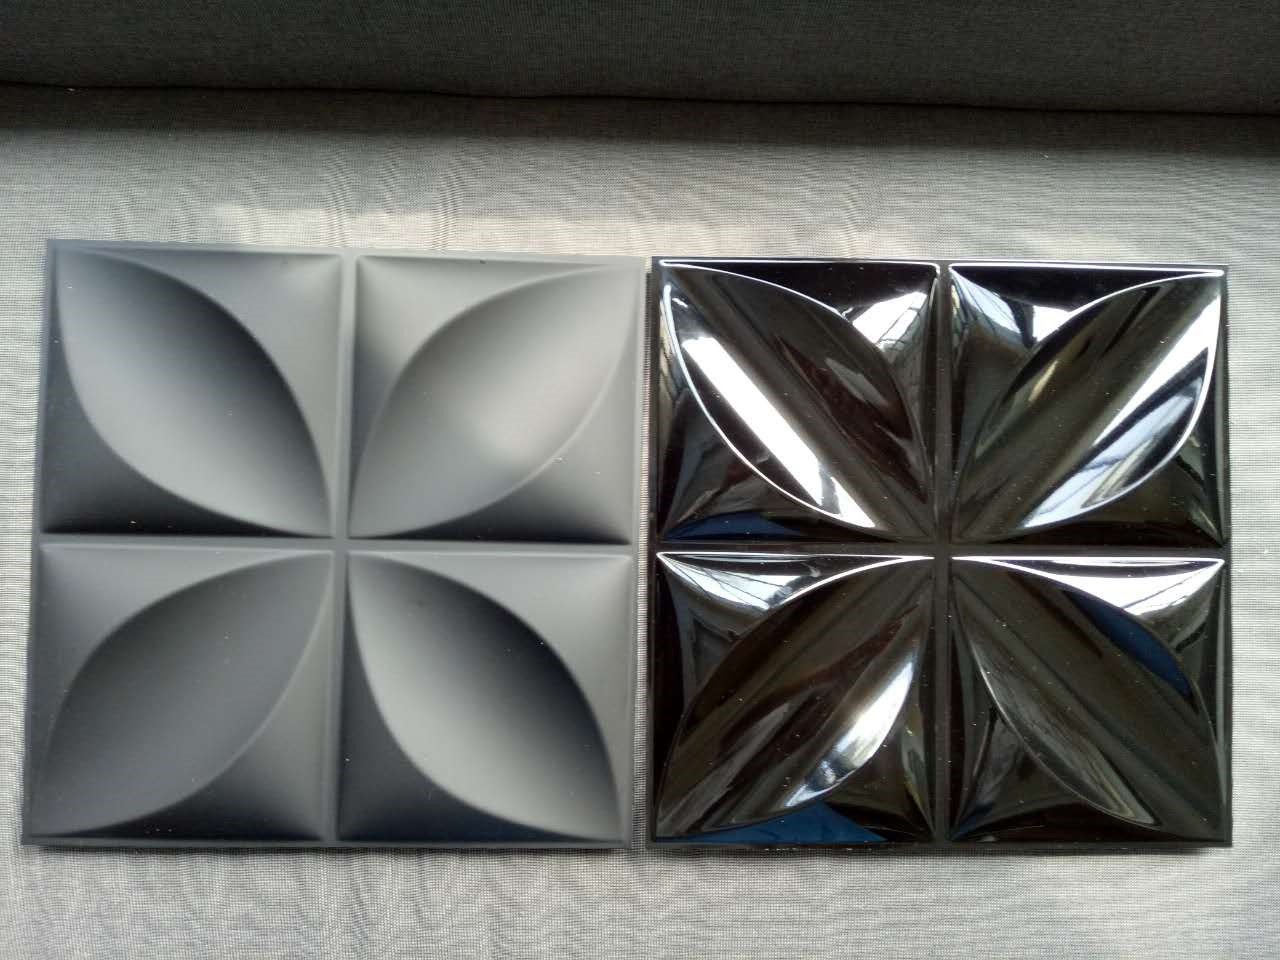 Pvc 3d Wall Panel 1 Beautiful Color 3d Pvc Wall Panel 2 Washable And Waterproof 3 Suitable For Both Indoor Pvc Wall Panels Wall Paneling 3d Wall Panels